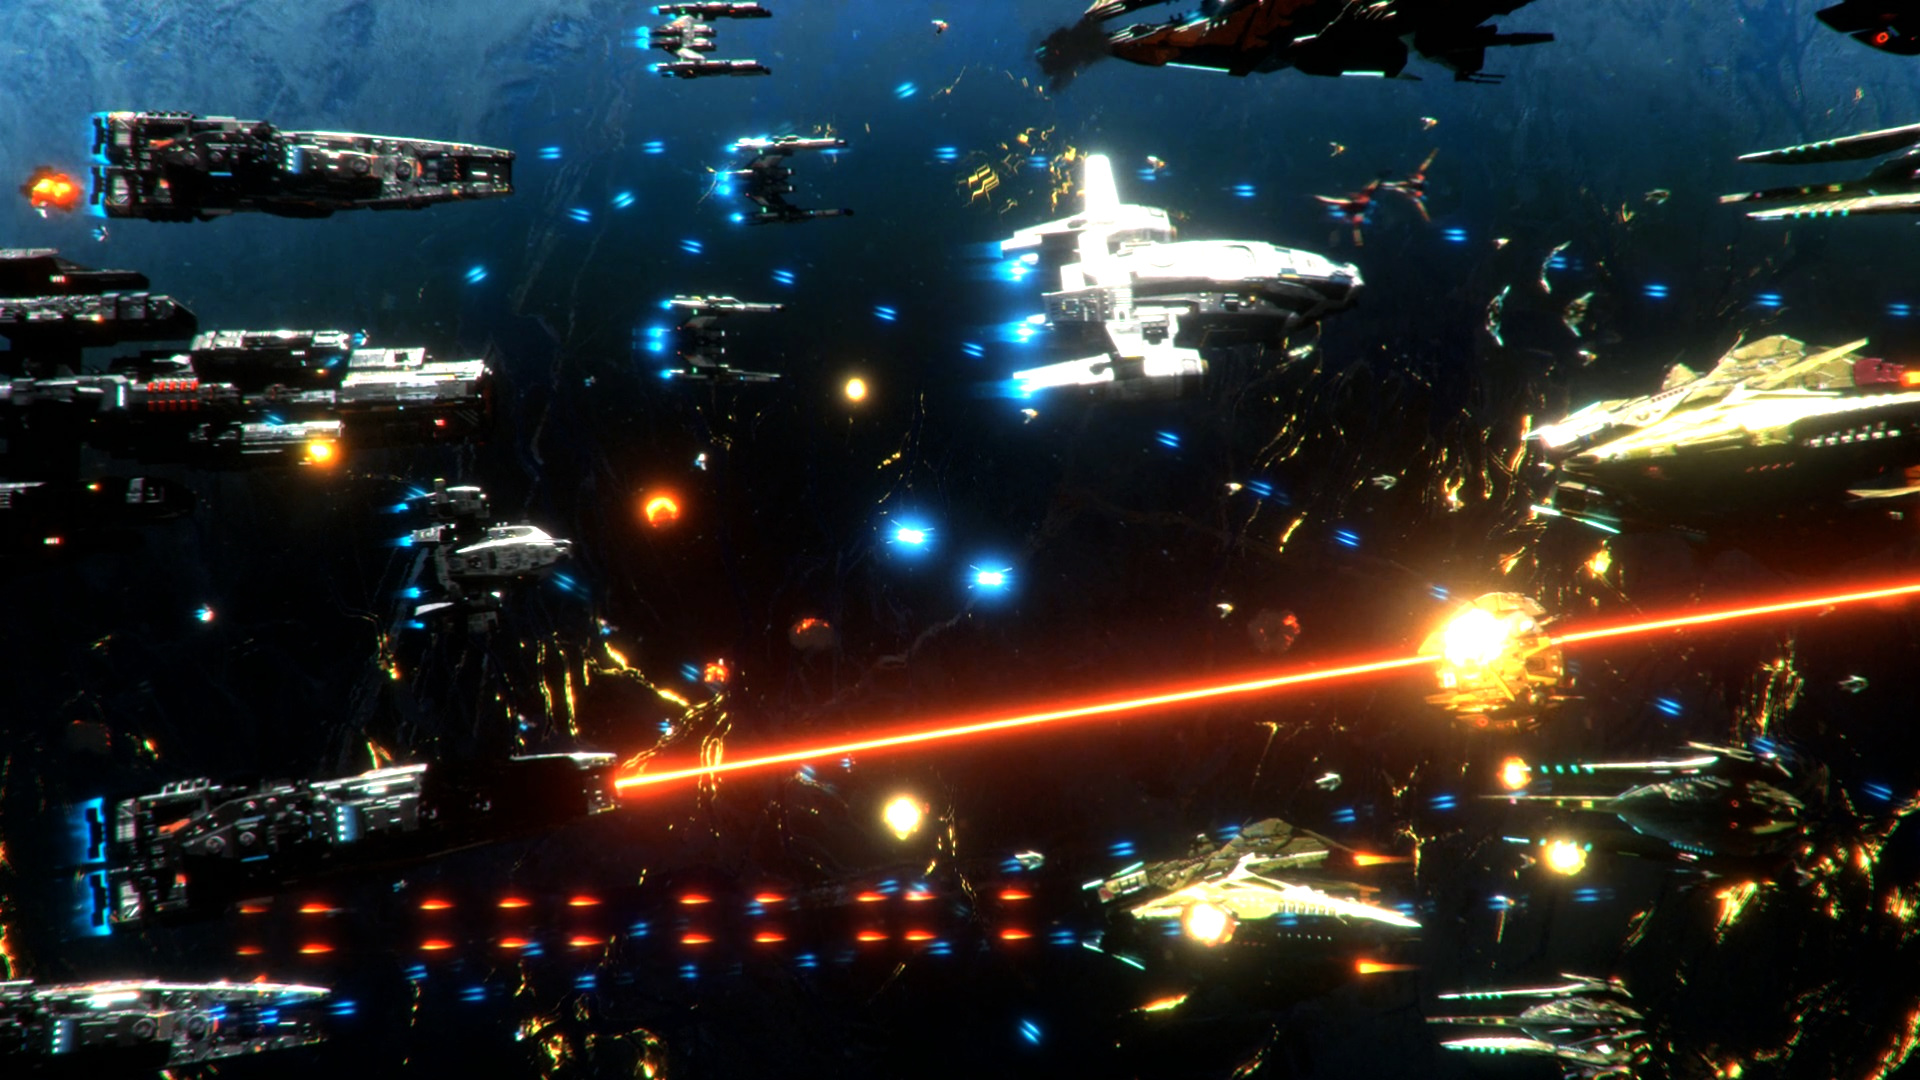 Galactic Civilizations 4 wants to mix Stellaris with Civilization in epic galaxies